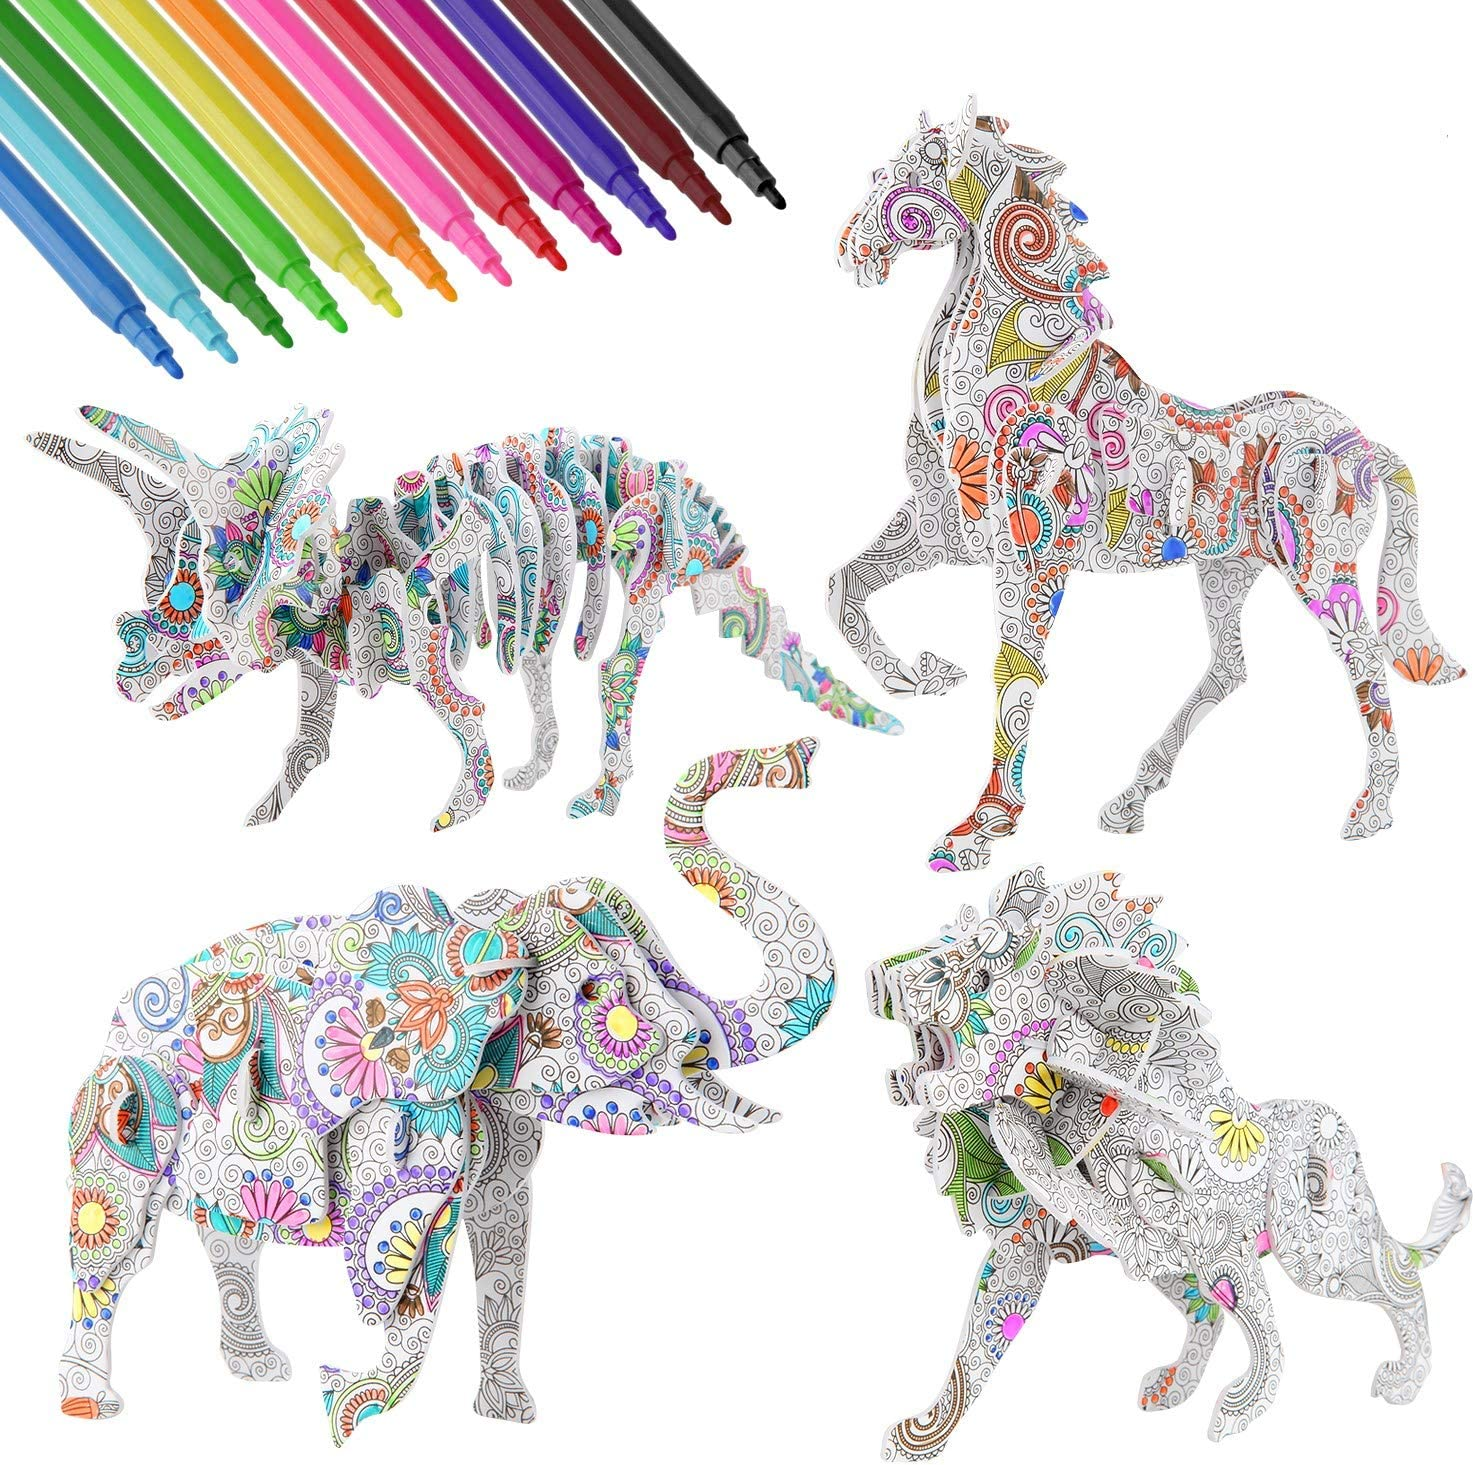 Bessmate 3D Coloring Puzzle Set, 4 Animals Painting Puzzles with 12 Pen Markers, Creativity DIY Gift for Boys Girls Age 8-12 Years Old Kids